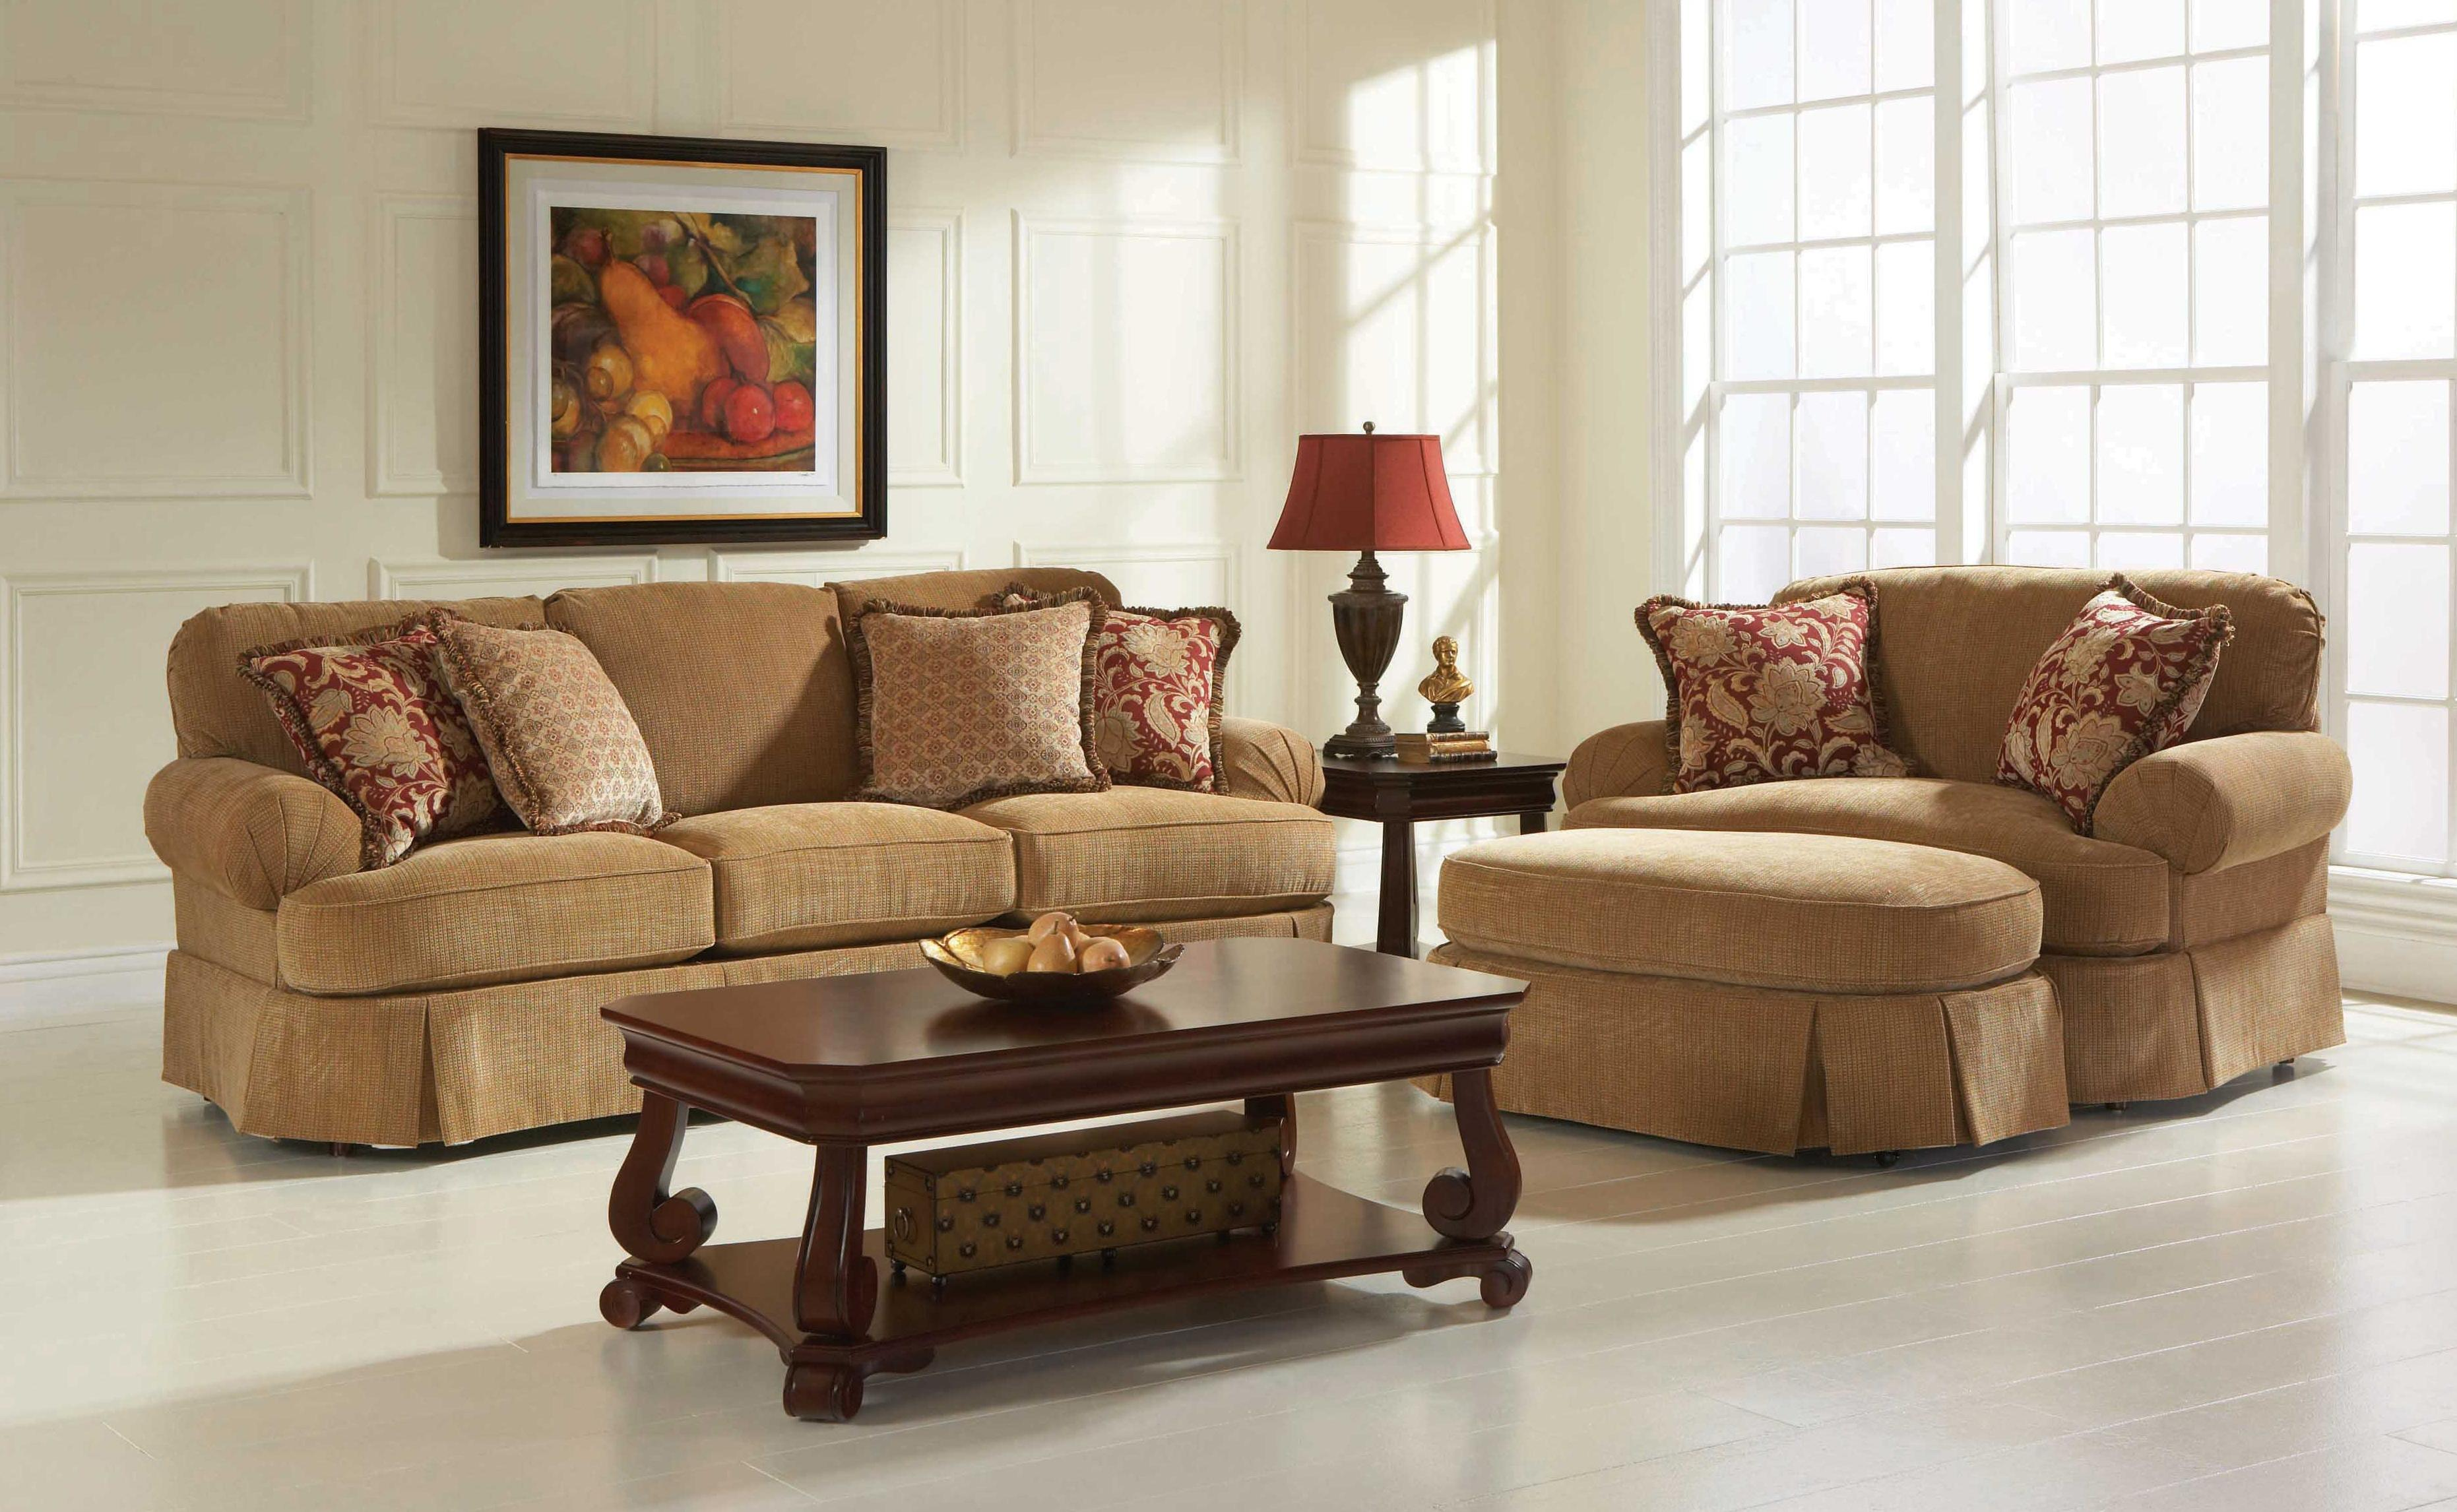 Mckinney 6544 by broyhill furniture baer 39 s furniture for Broyhill furniture